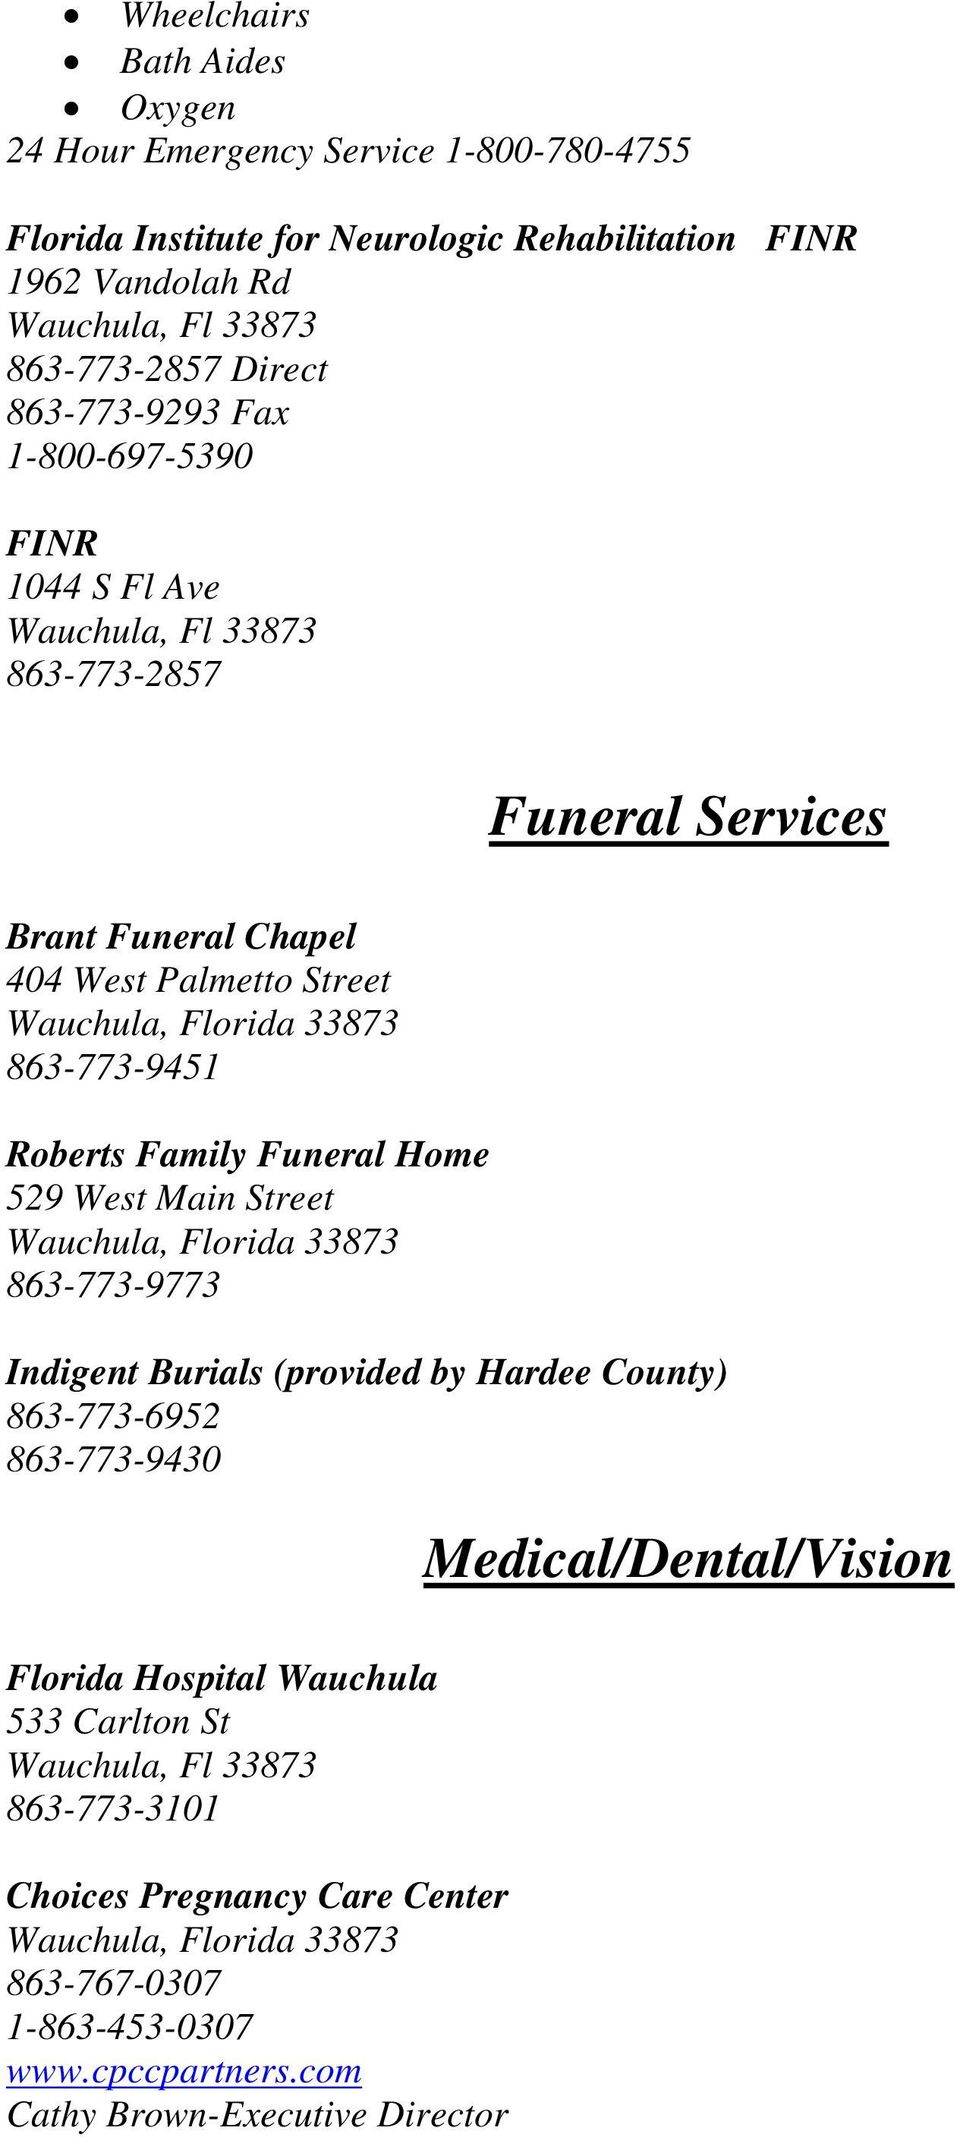 Family Funeral Home 529 West Main Street 863-773-9773 Indigent Burials (provided by Hardee County) 863-773-6952 863-773-9430 Medical/Dental/Vision Florida